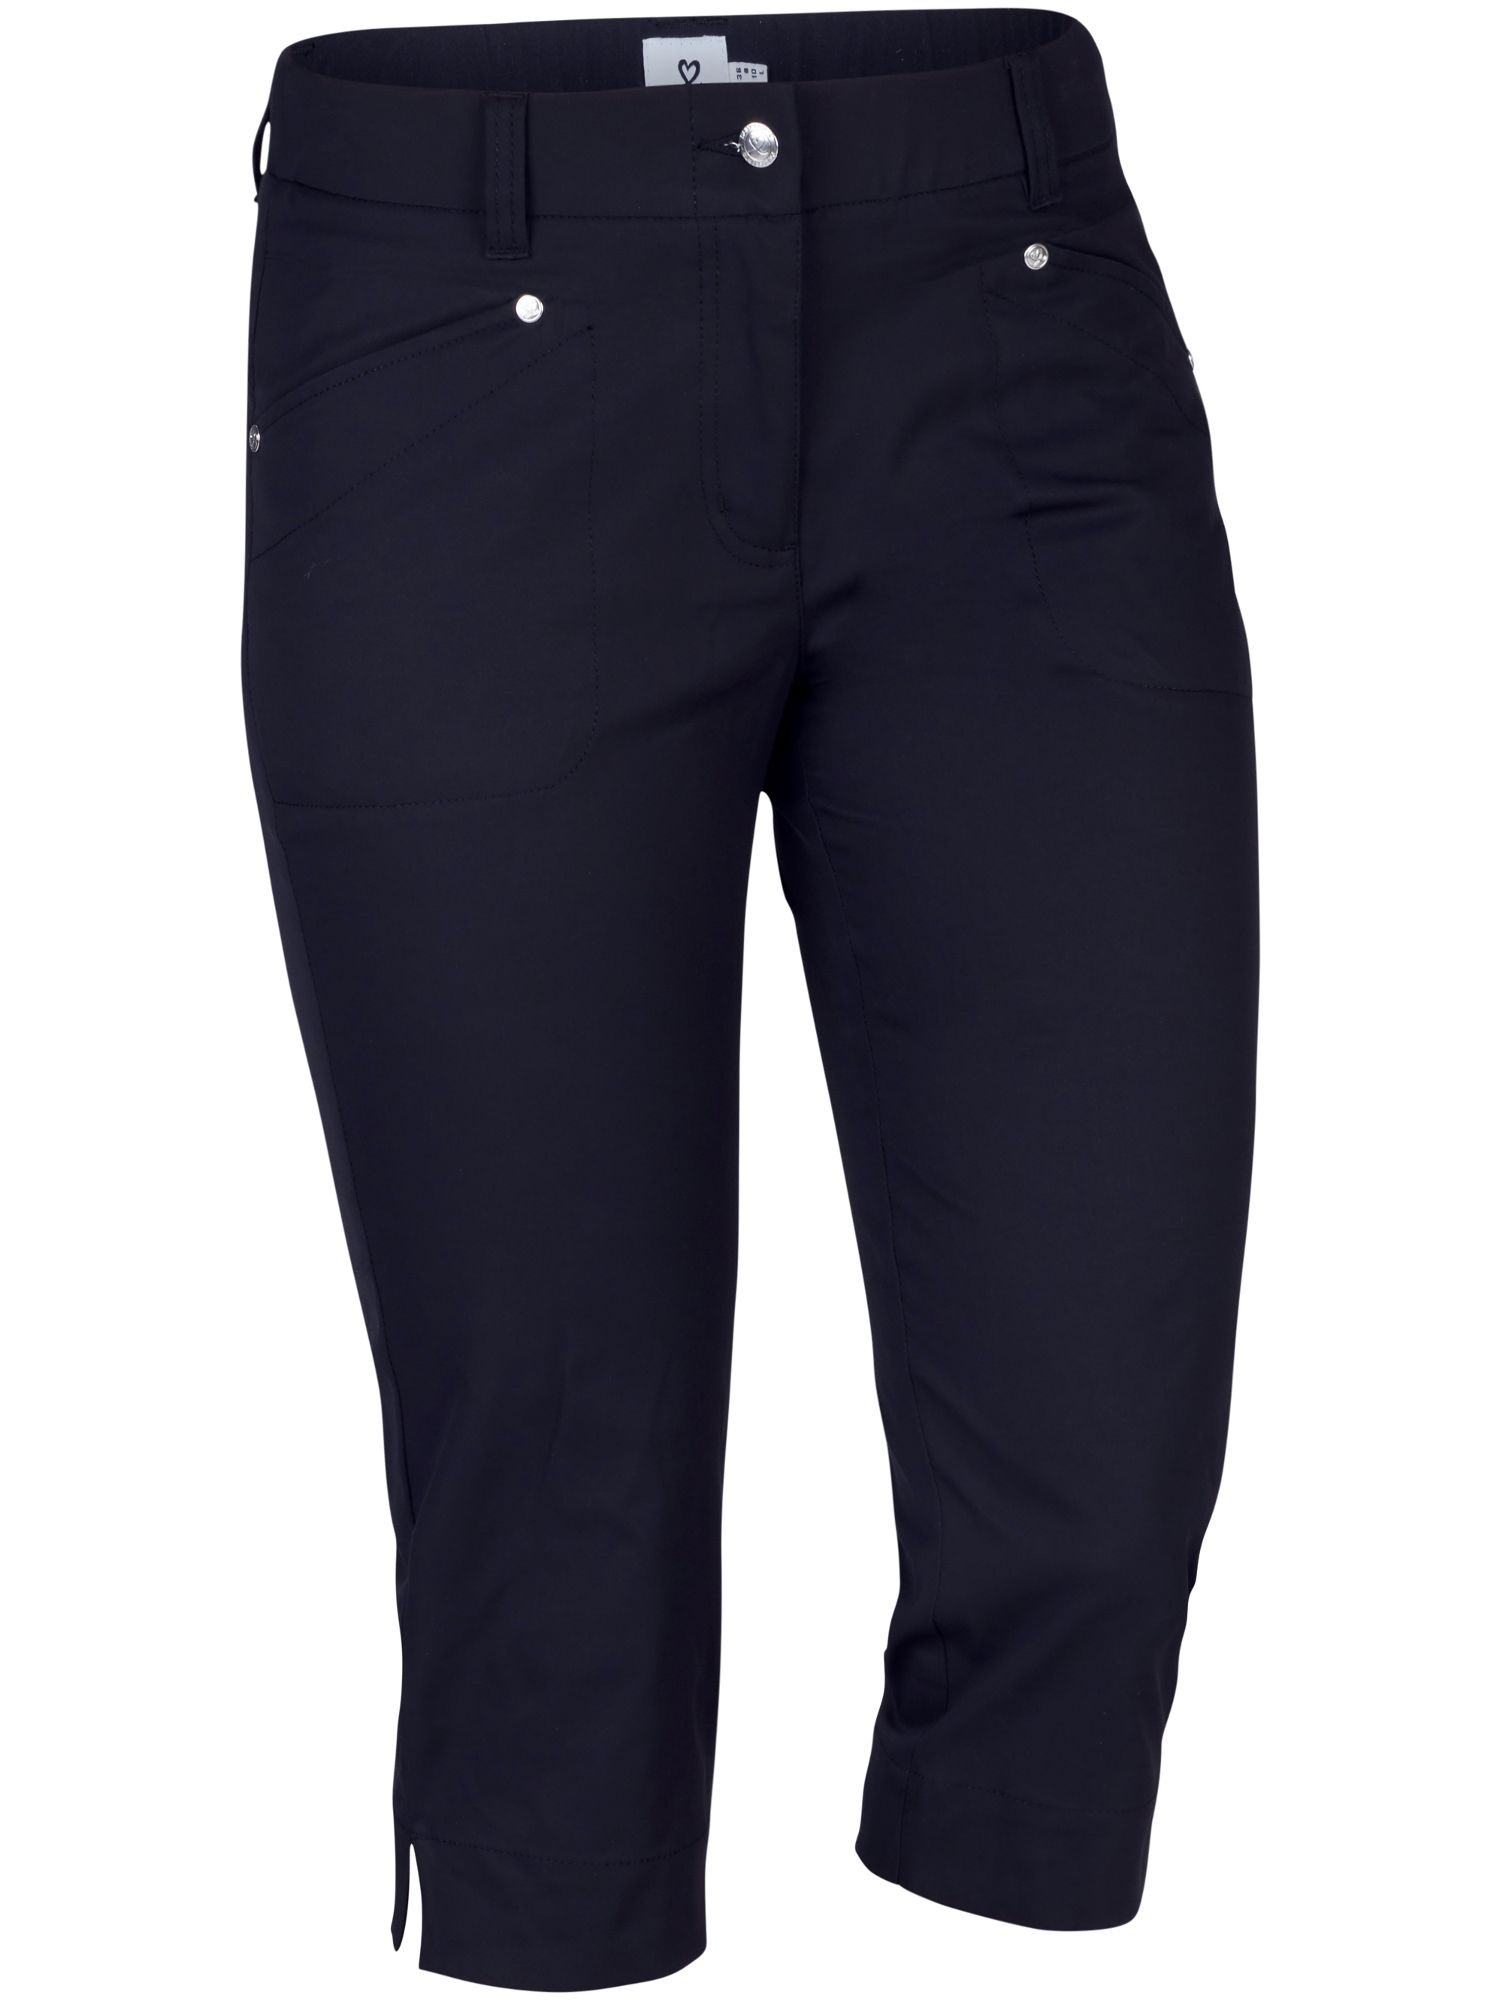 Daily Sports Lyric Capri, Blue